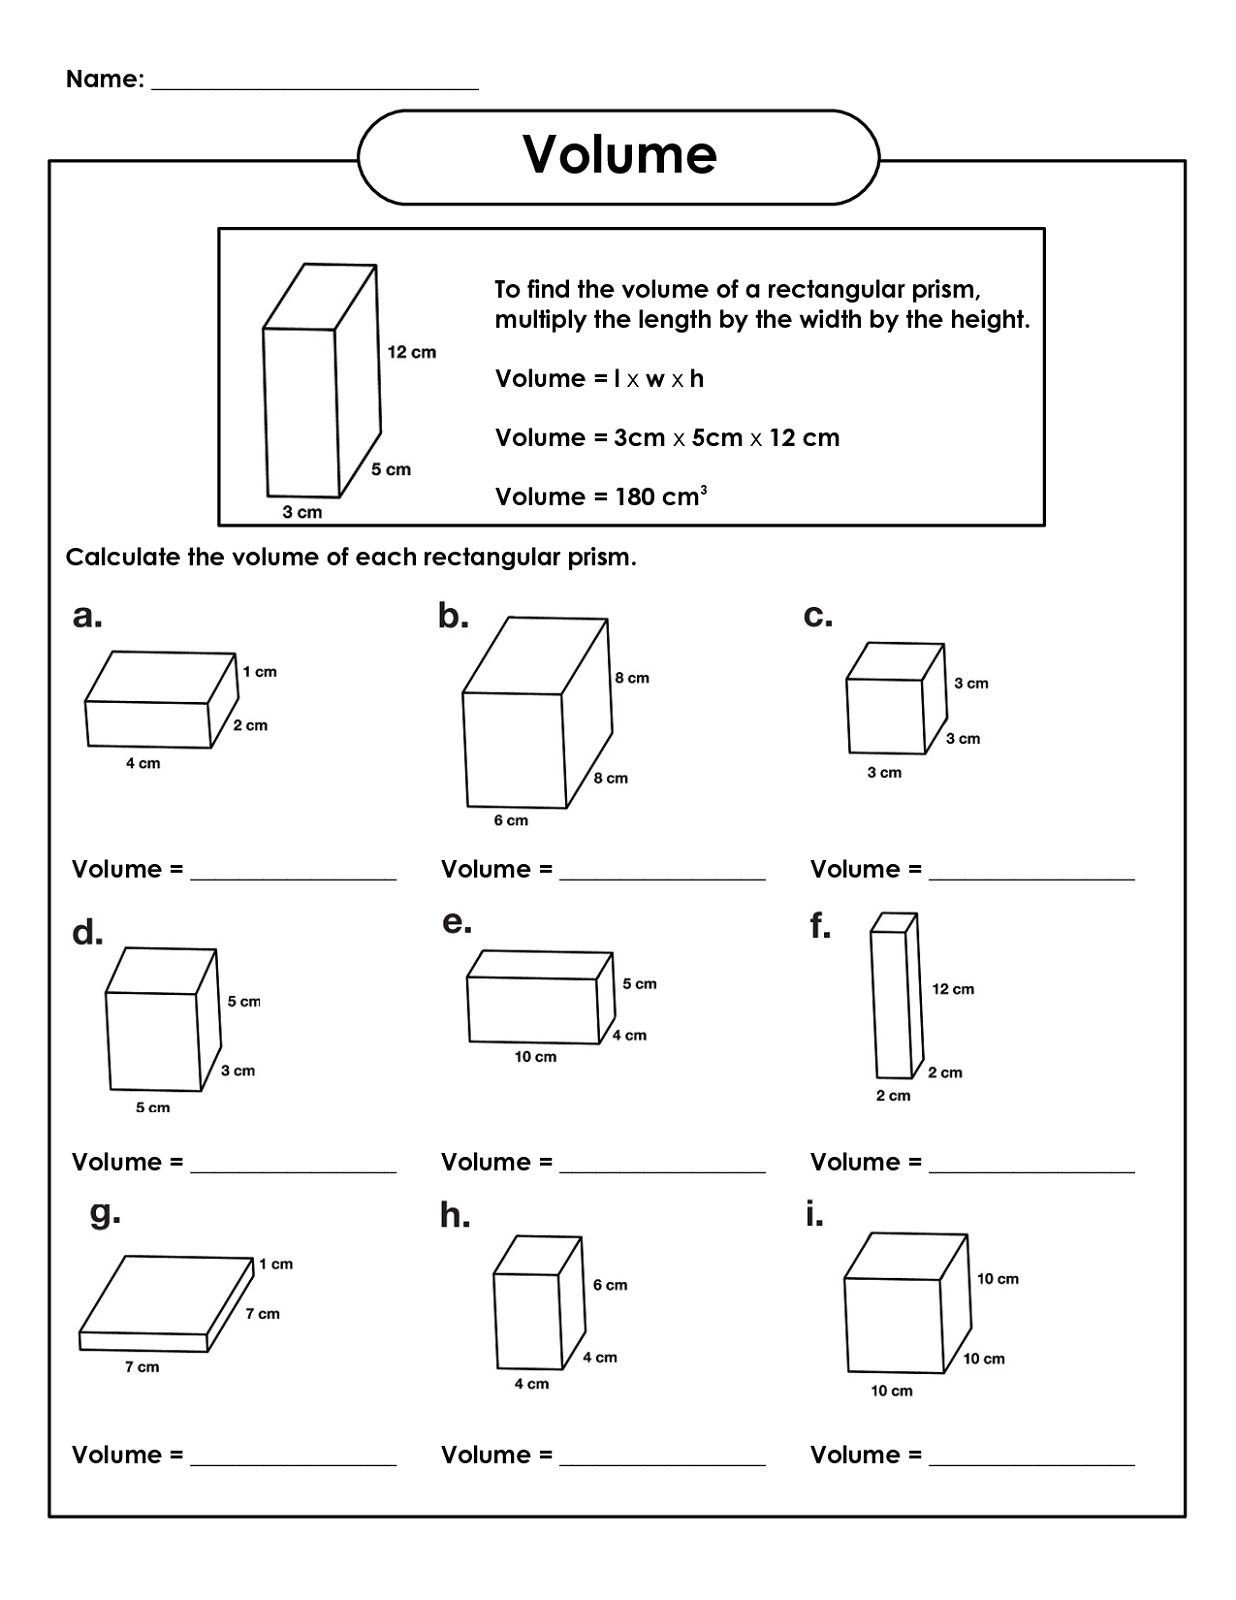 hight resolution of Rectangular Prism Volume - 5th Grade Math Worksheets   K5 Worksheets   Grade  5 math worksheets